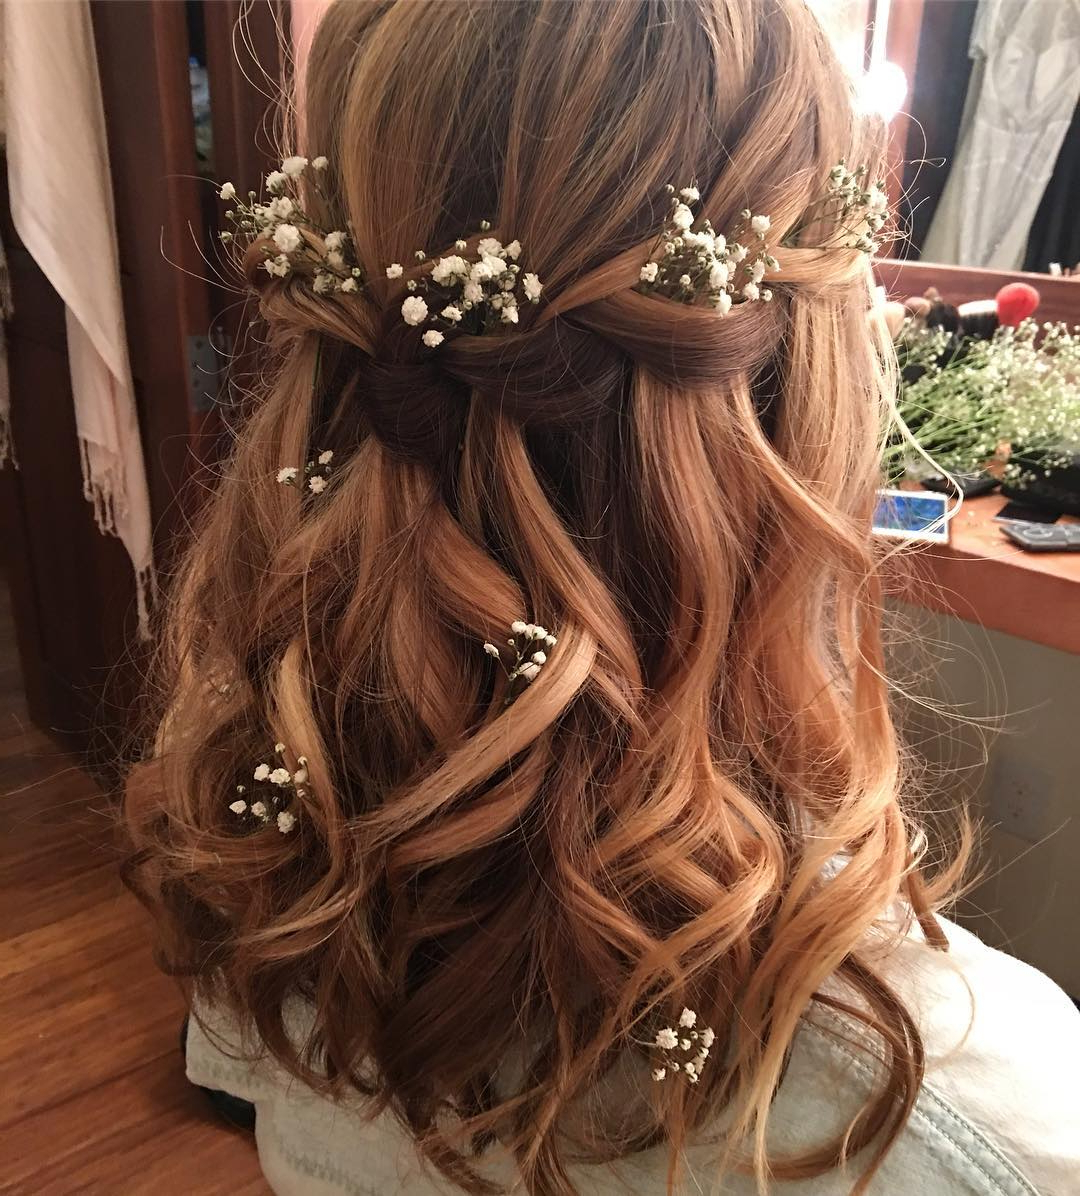 Latest Embellished Caramel Blonde Chignon Bridal Hairstyles For 10 Lavish Wedding Hairstyles For Long Hair – Wedding Hairstyle Ideas (Gallery 18 of 20)